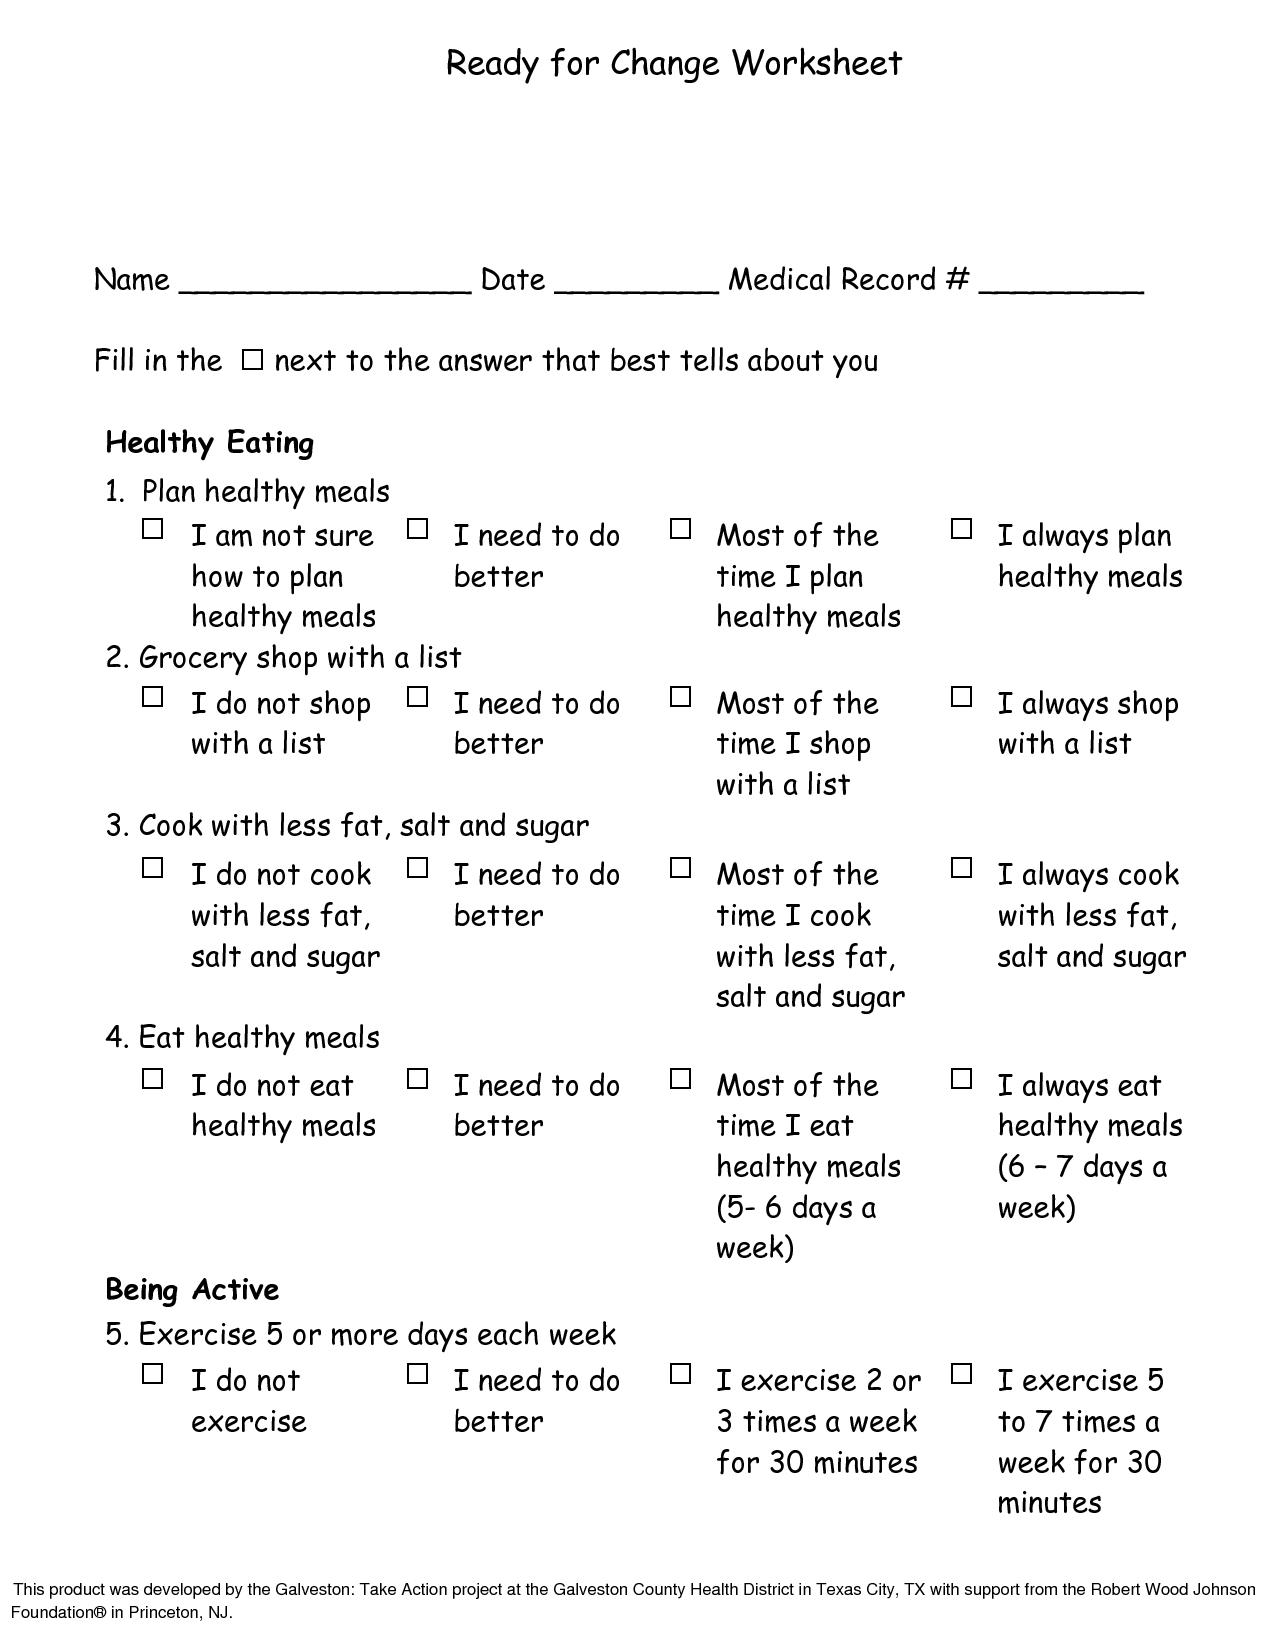 17 Best Images Of Lifestyle Change Worksheet